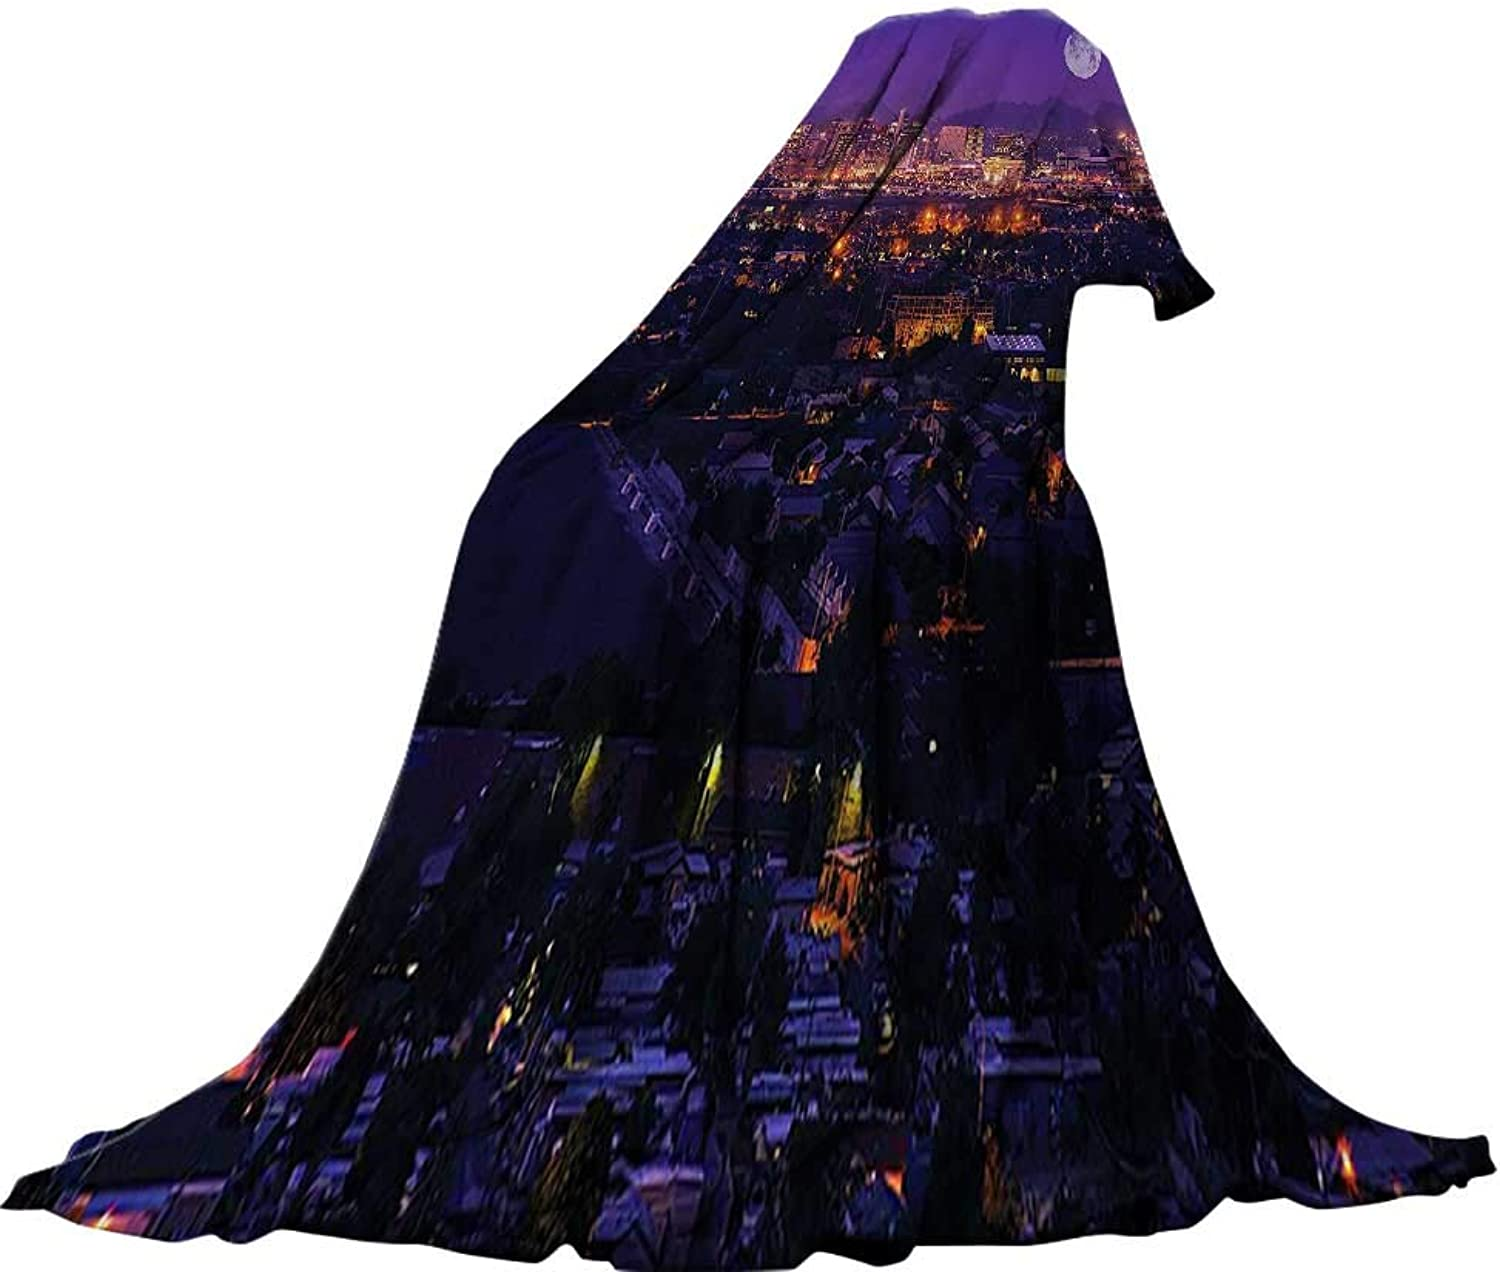 QINYANHome Soft Travel Blanket(90 x70 ) Summer Quilt Comforter Phoenix Arizona Full Moon Over Phoenix Arizona Downtown Residential Areas Picture Navy Purple.